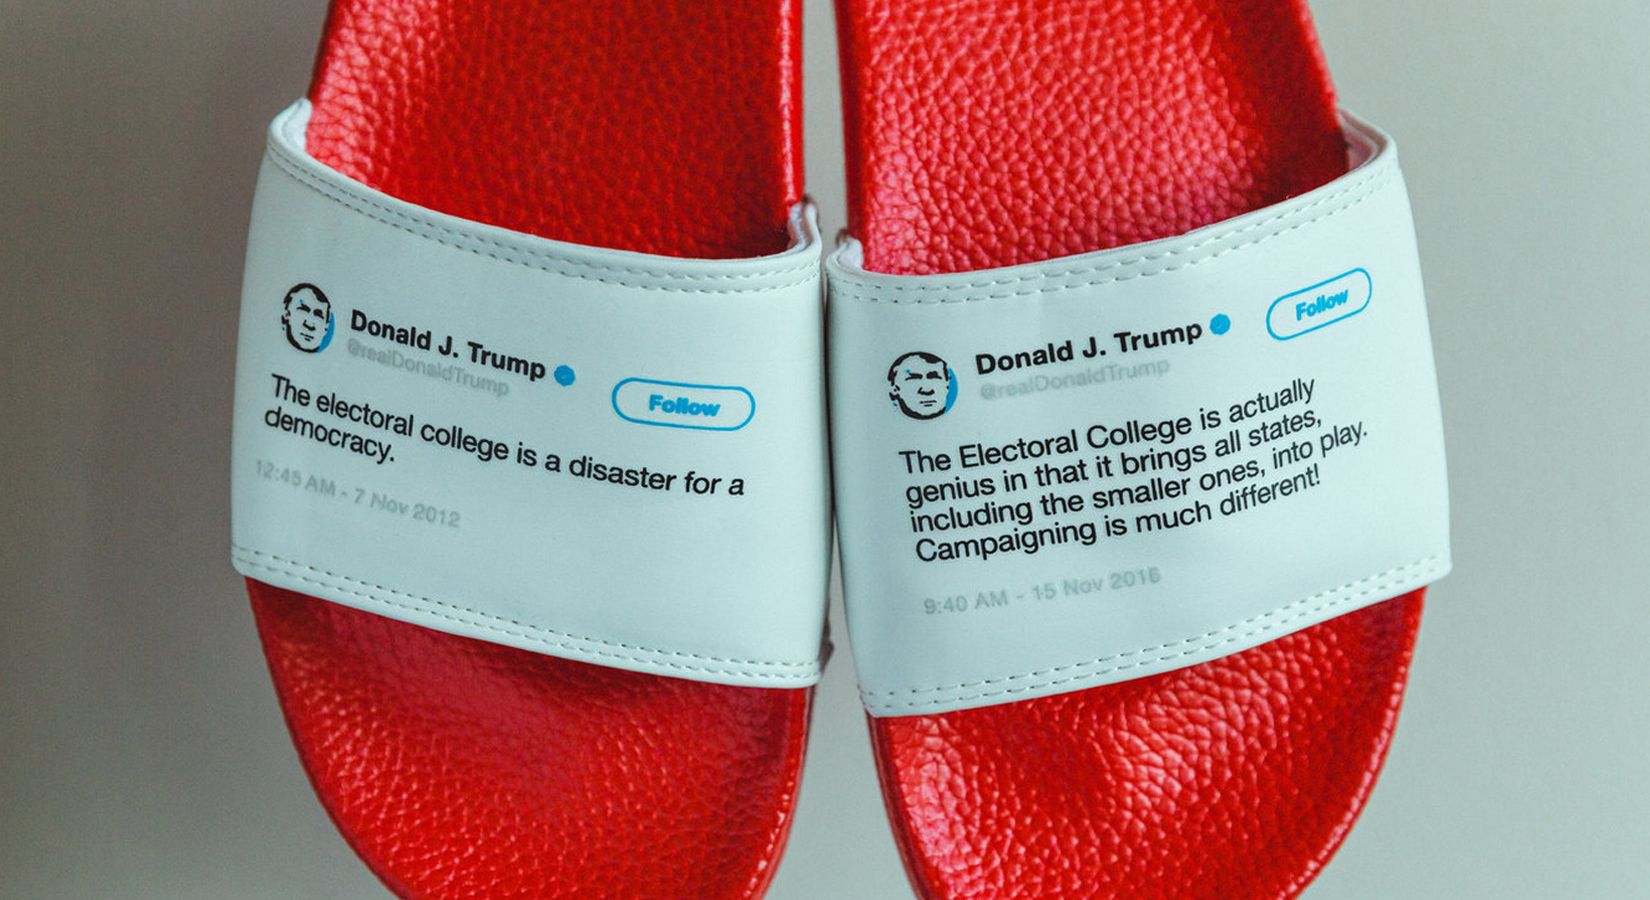 This guy made physical flip-flops out of Trump's contradictory tweets — and he sold out his entire inventory in less than a month